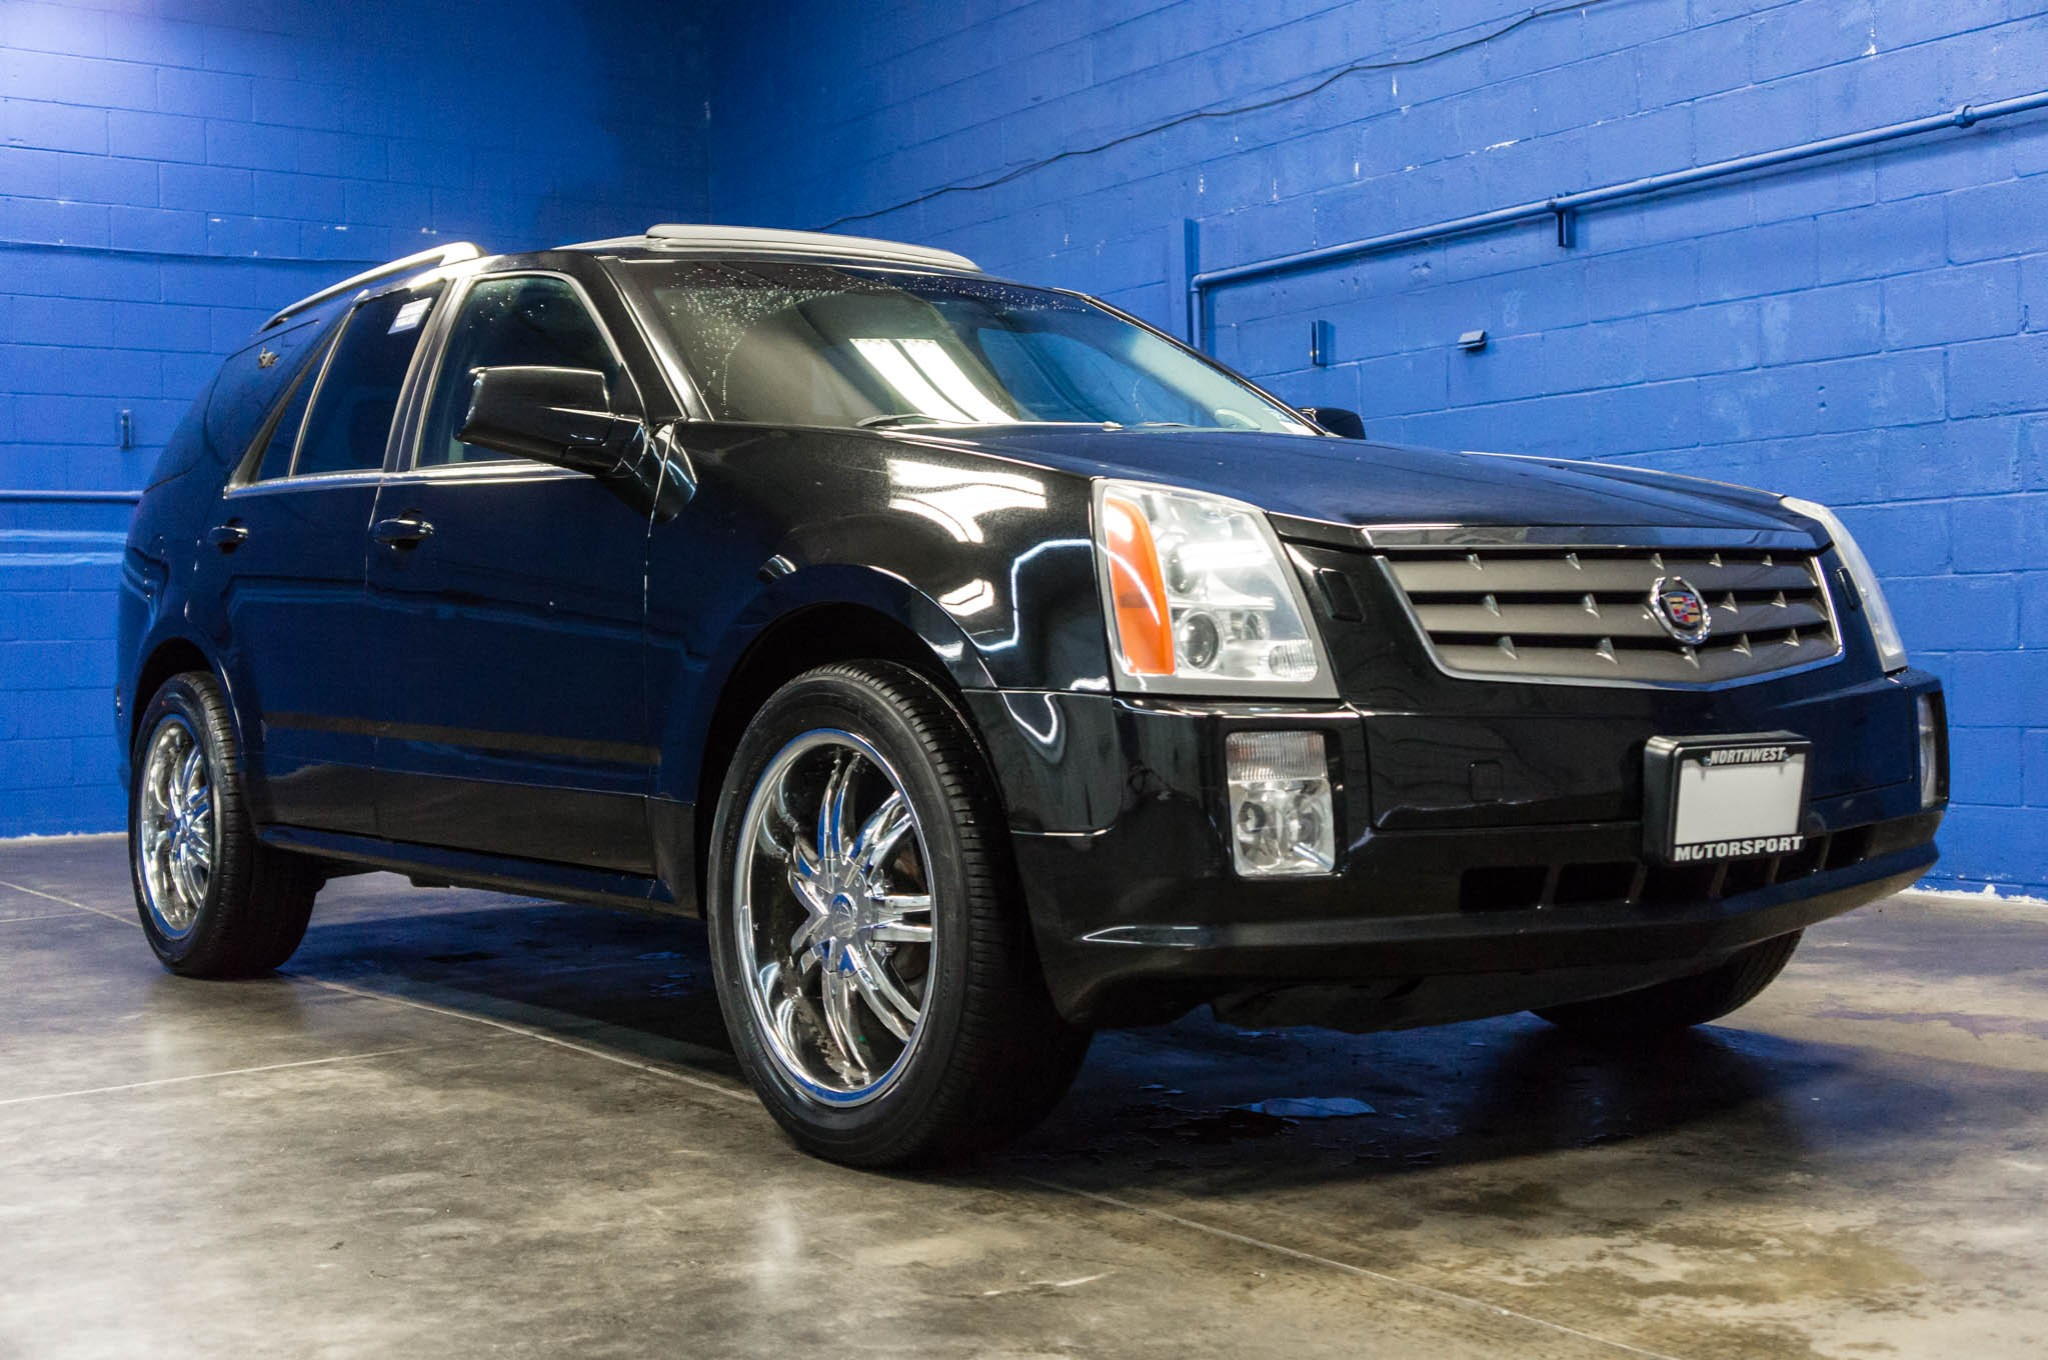 used 2004 cadillac srx awd suv for sale northwest motorsport. Black Bedroom Furniture Sets. Home Design Ideas